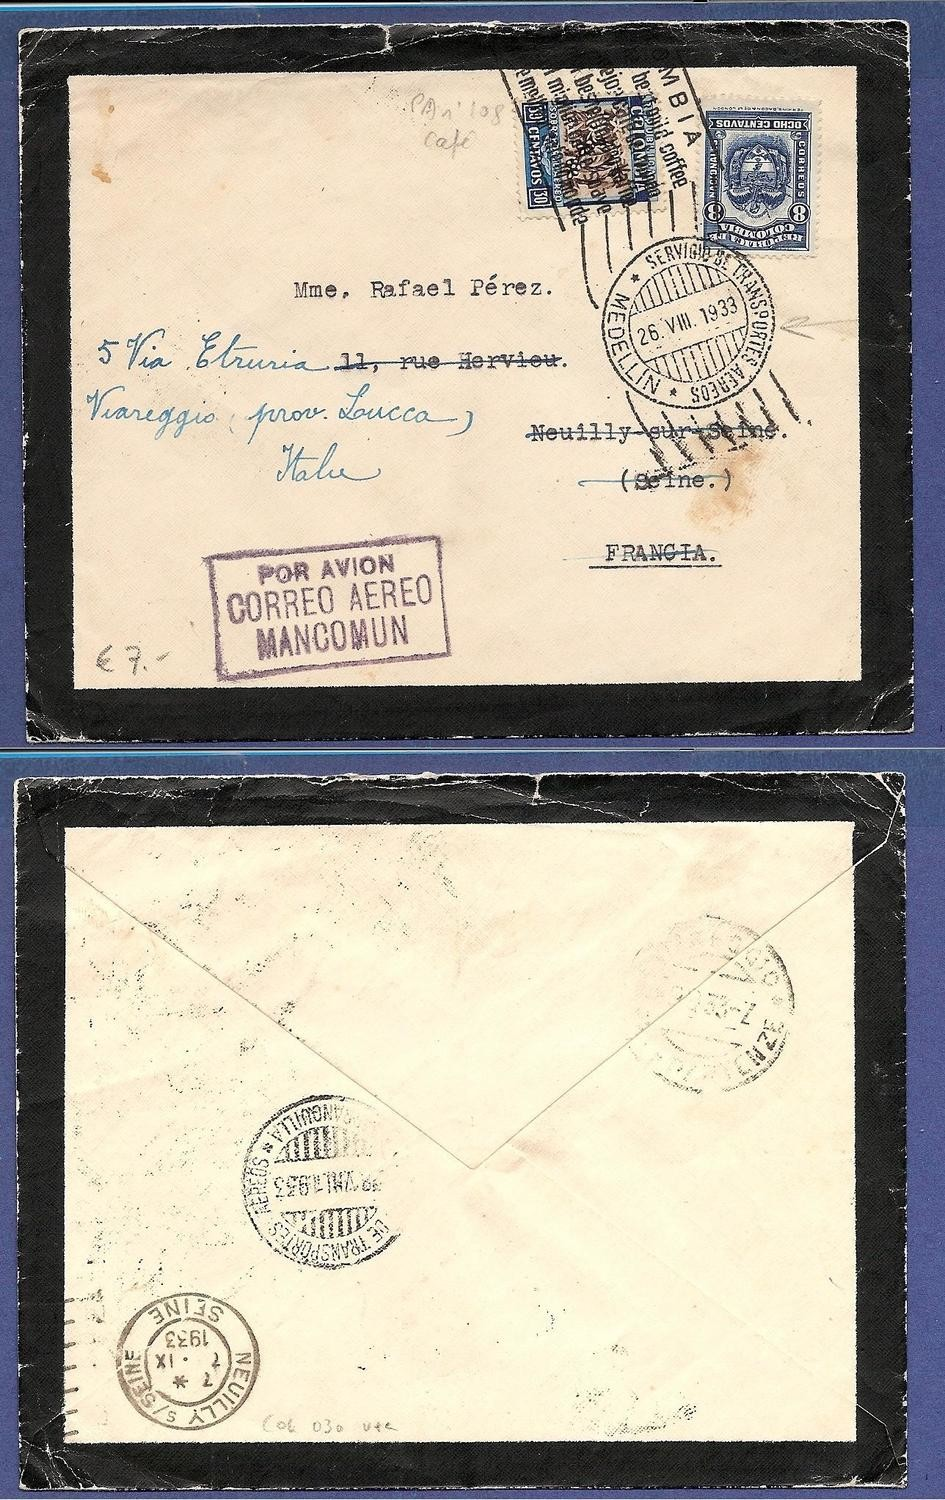 COLOMBIA mourning cover 1933 Medellin to France forwarded